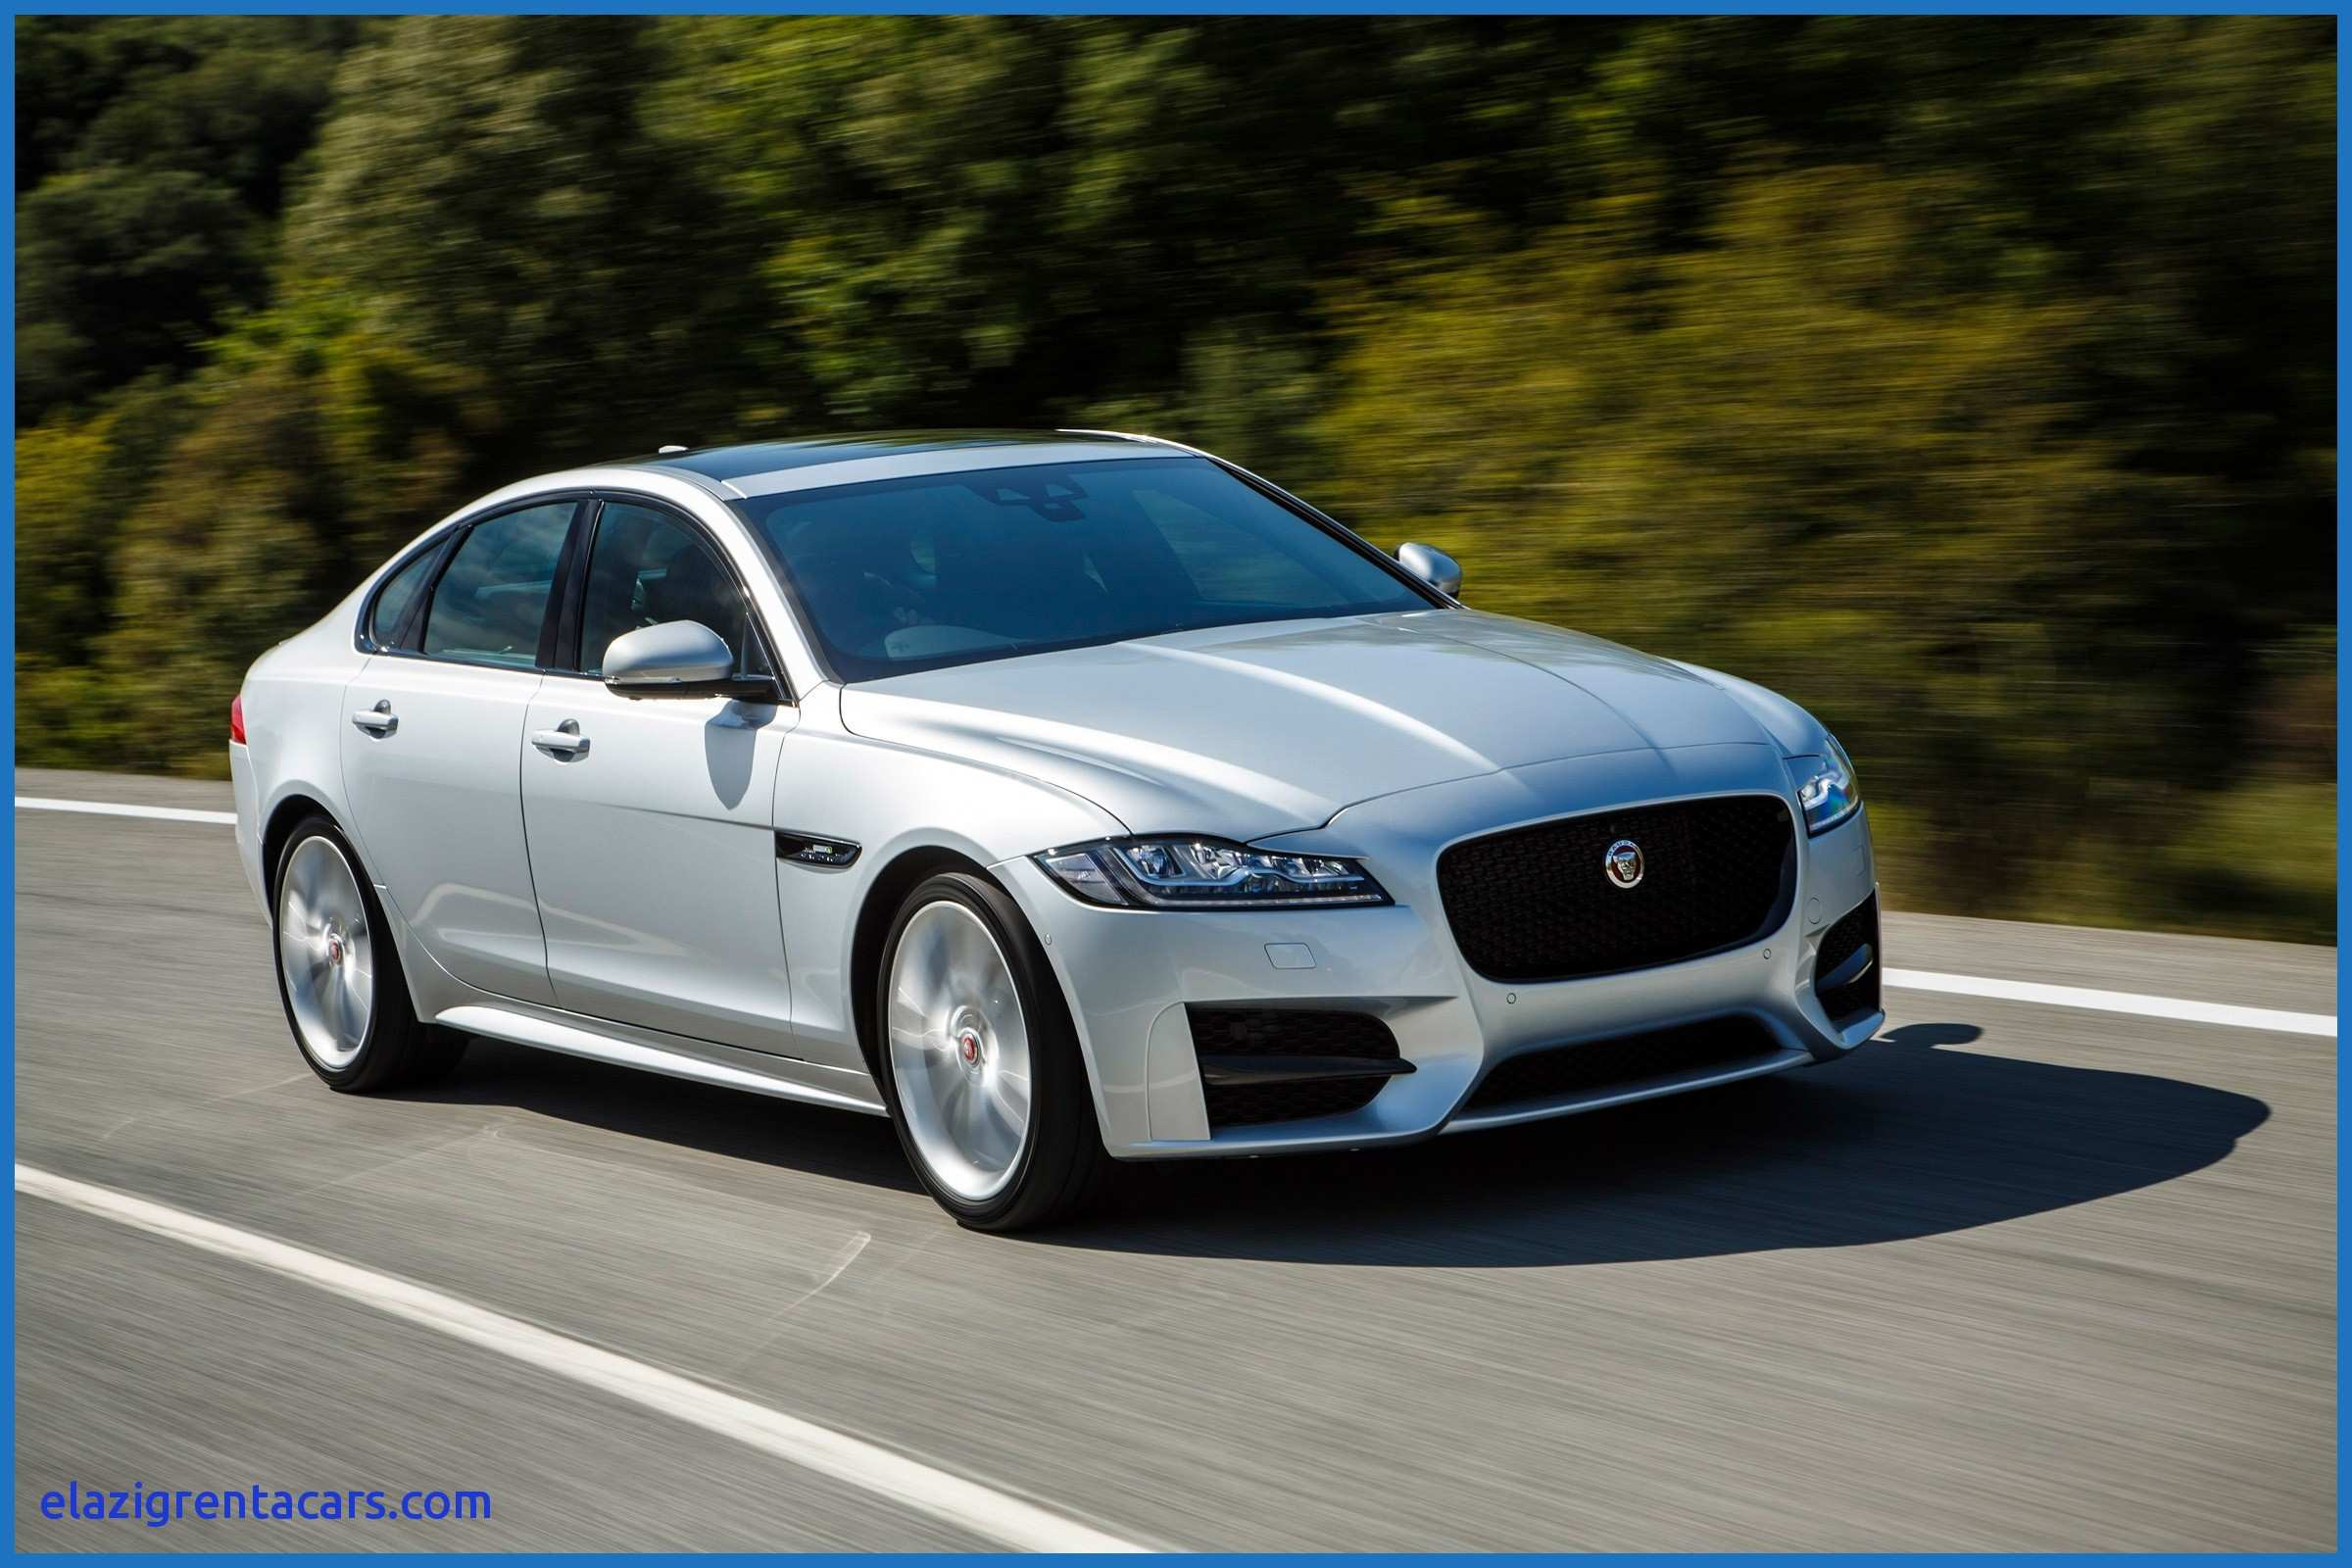 92 A 2020 Jaguar Xf Rs Price And Release Date